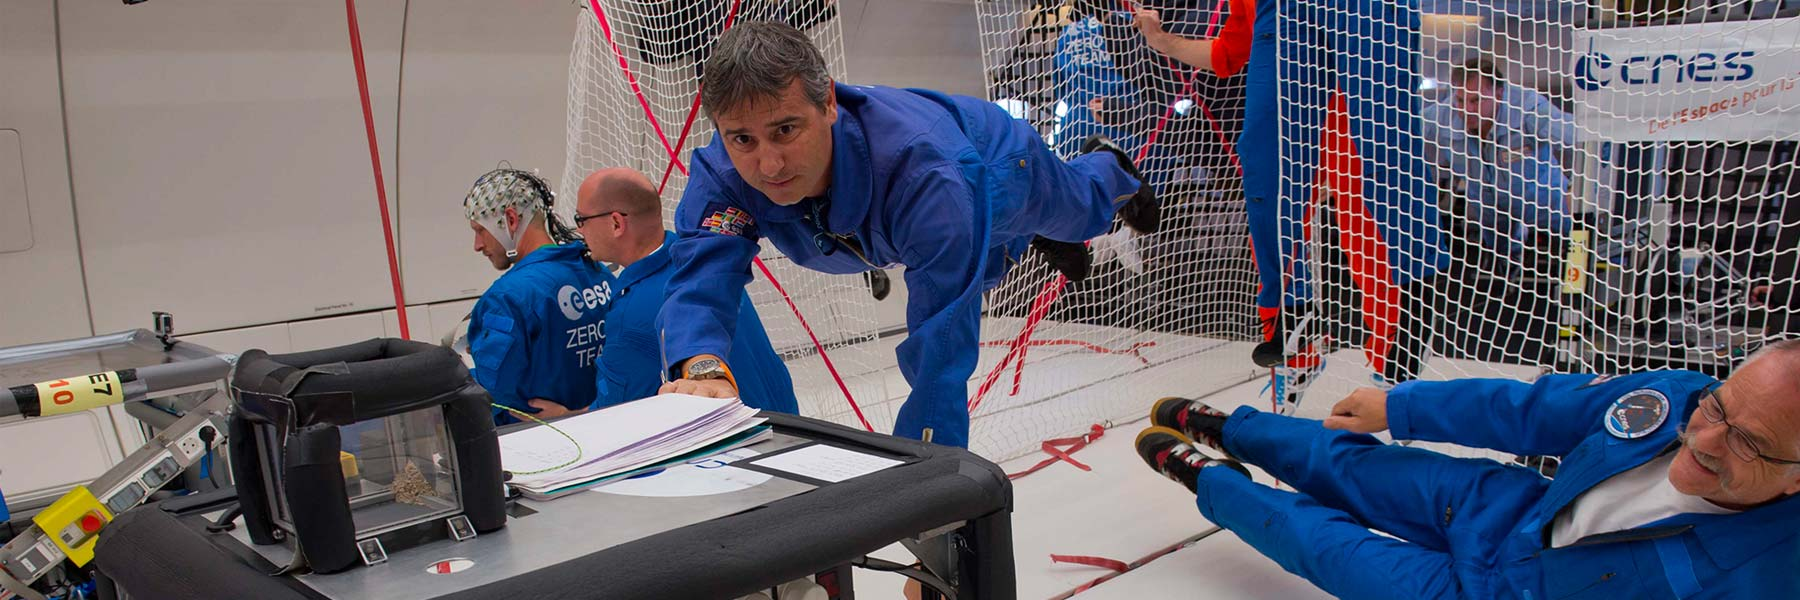 science-flight-airzerog-novespace